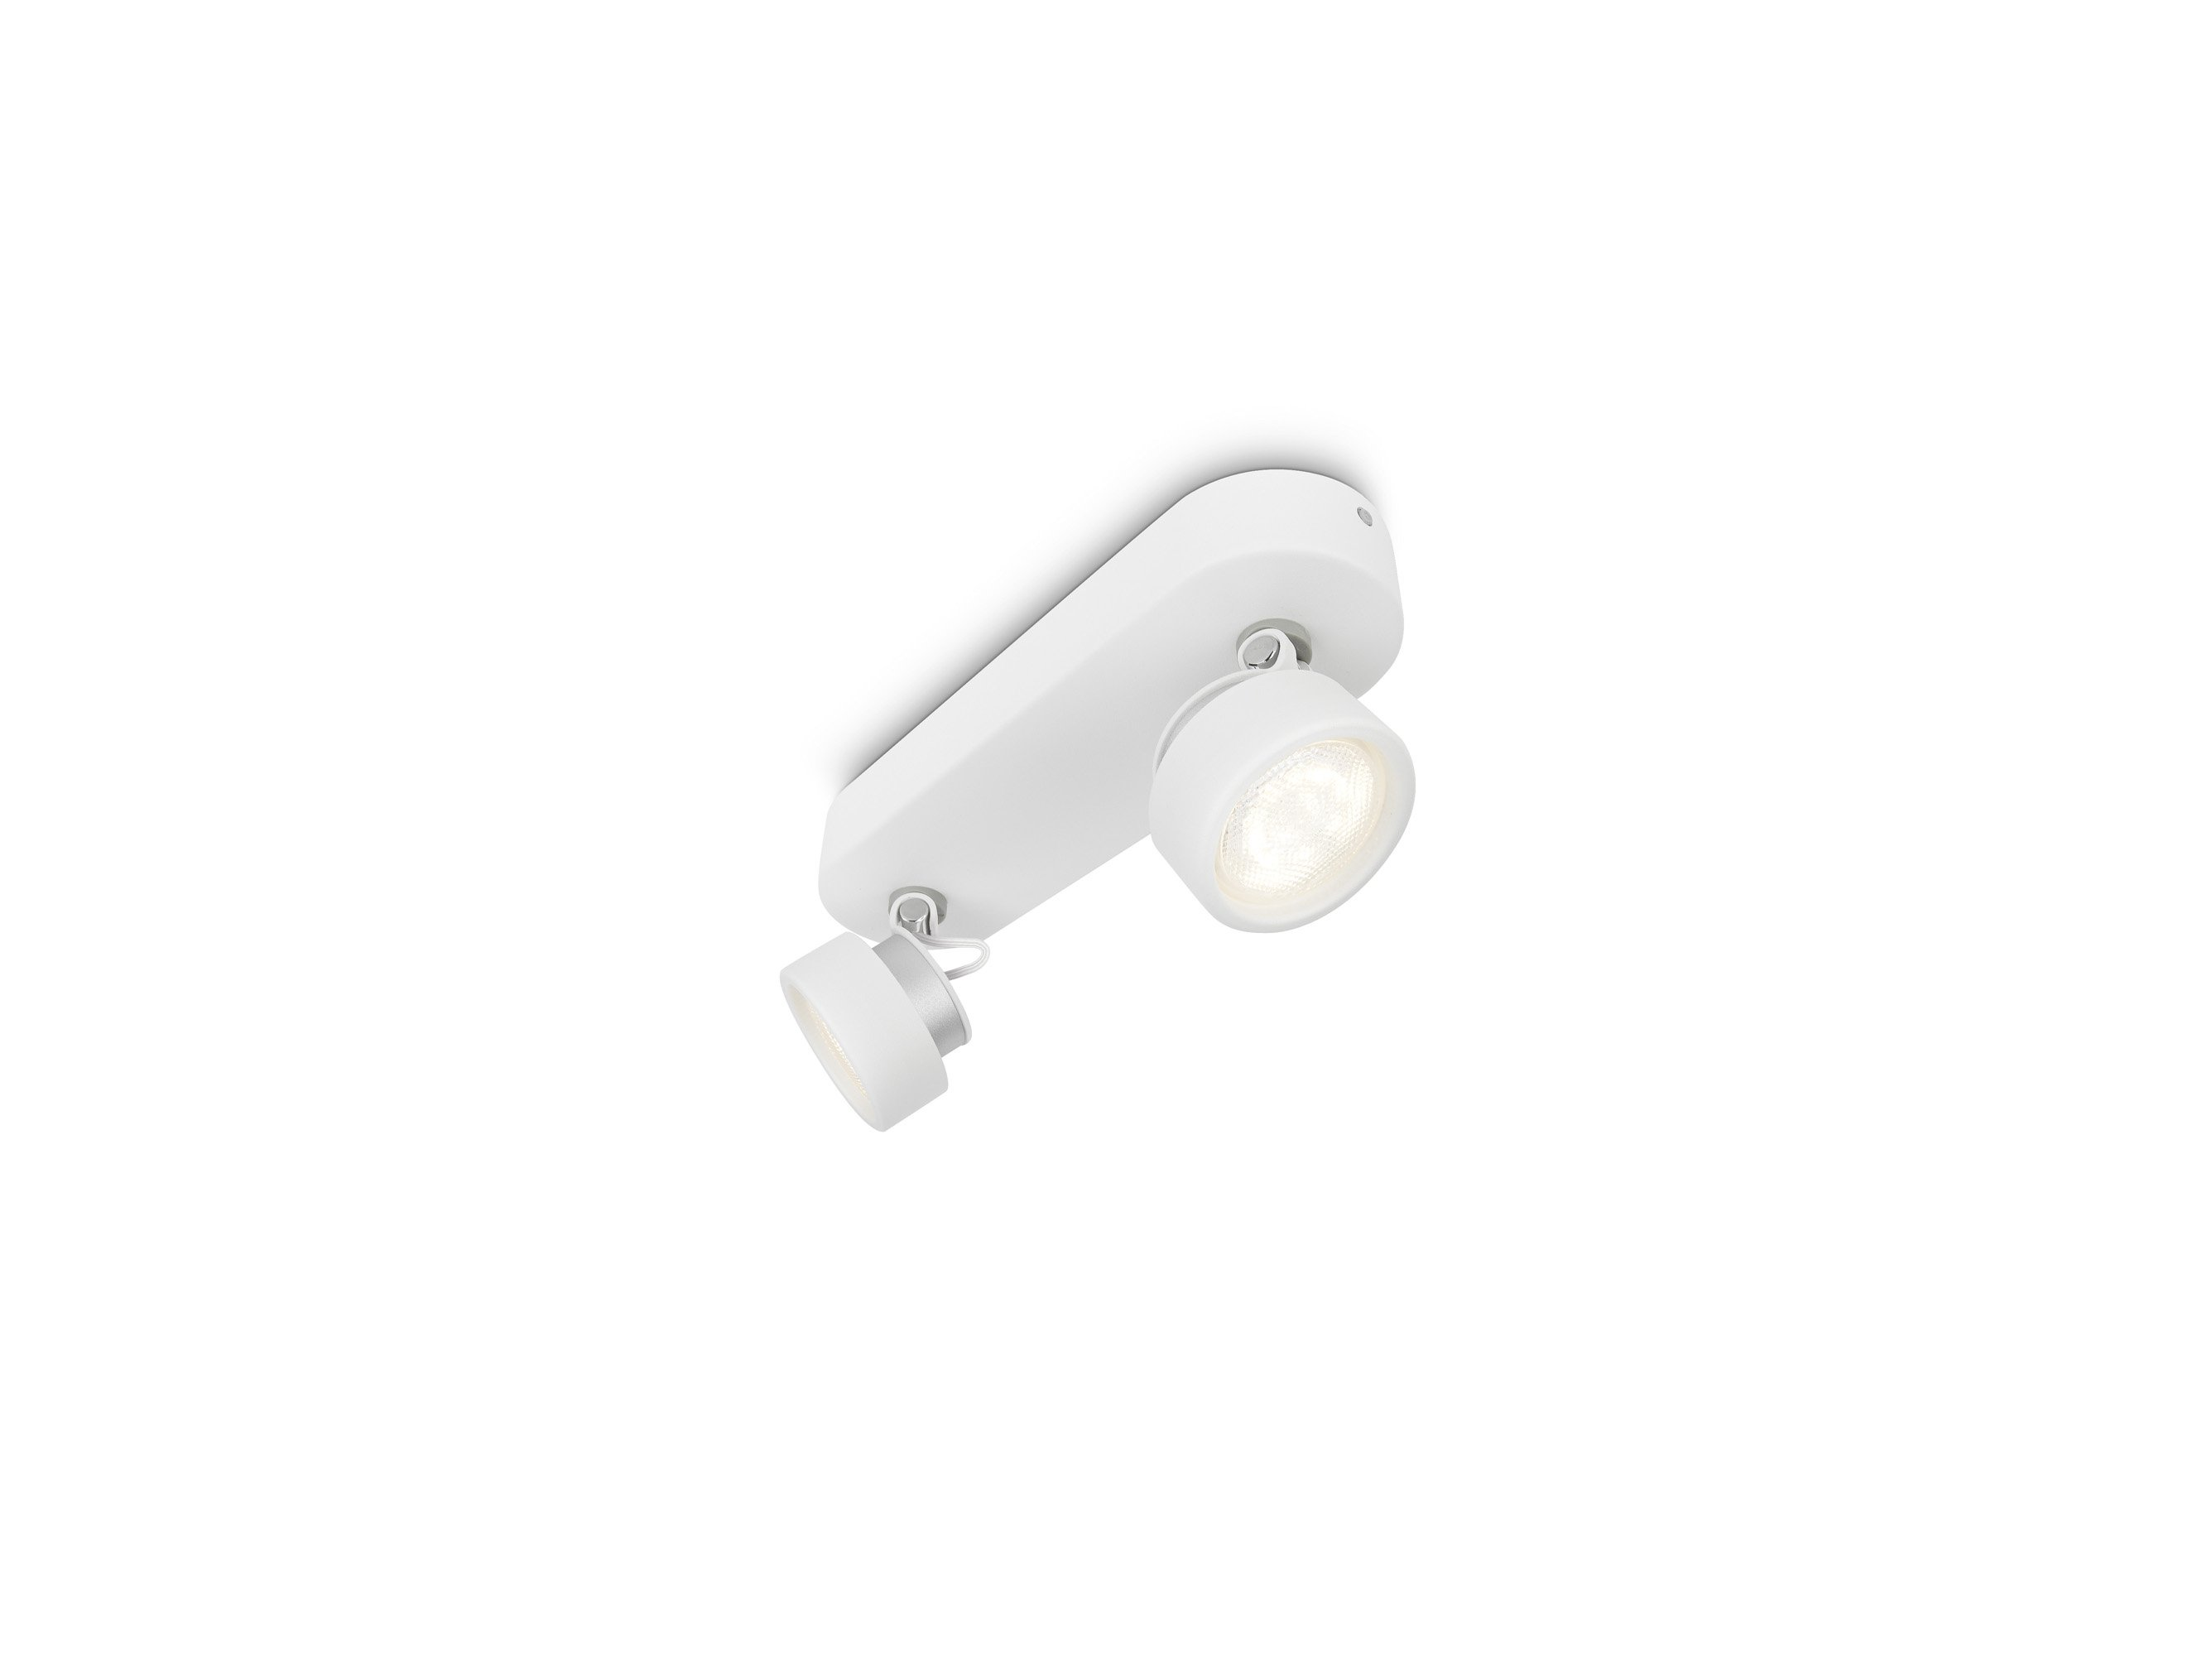 RIMUS LED spotlamp MyLiving by Philips 53272-31-16